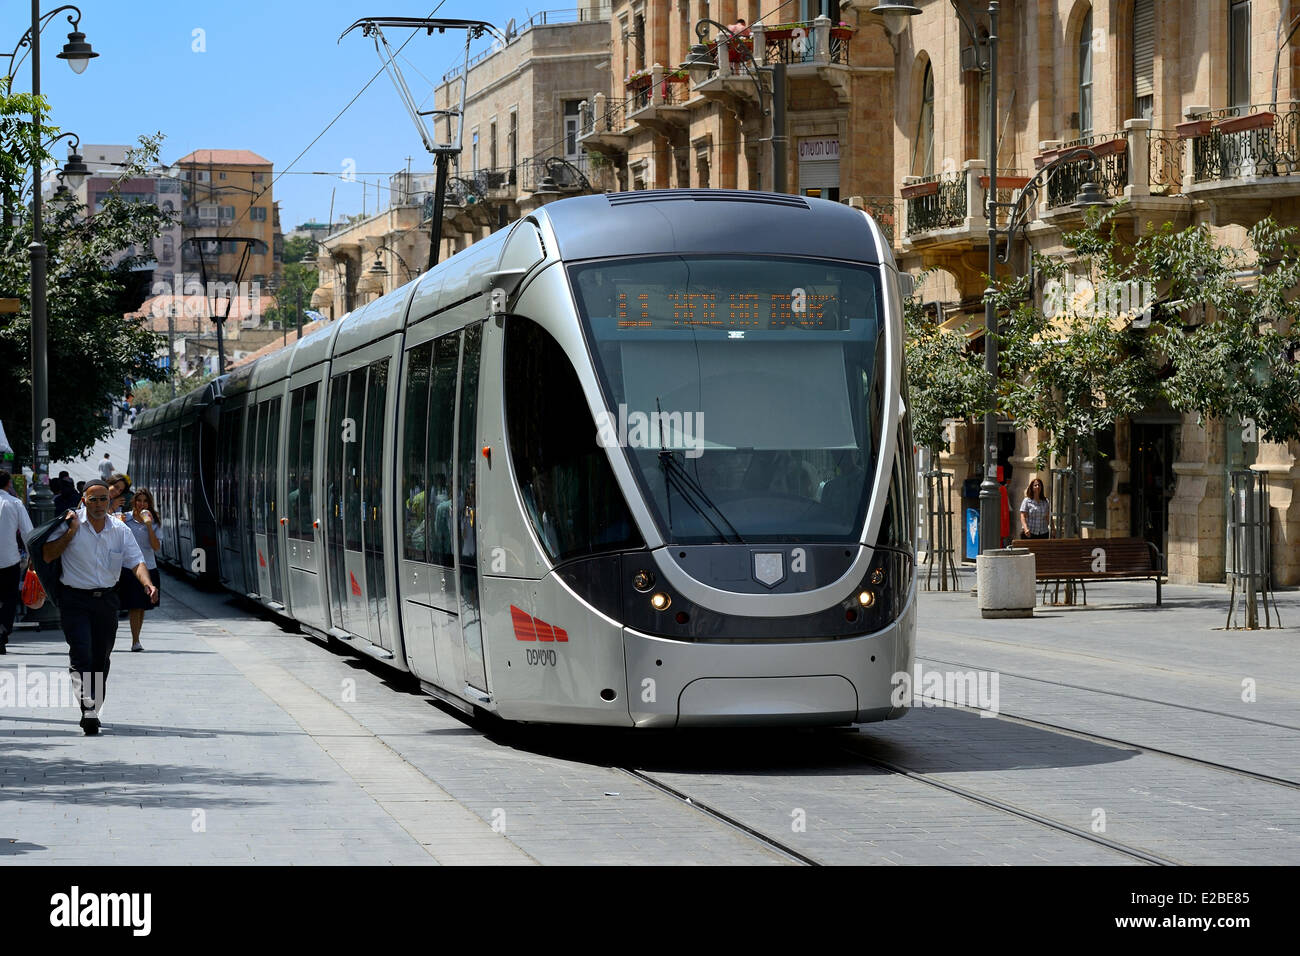 Israel, Jerusalem light rail on Jaffa Road, the line is 13.9 kilometers (8.6 mi) long with 23 stops and the train - Stock Image